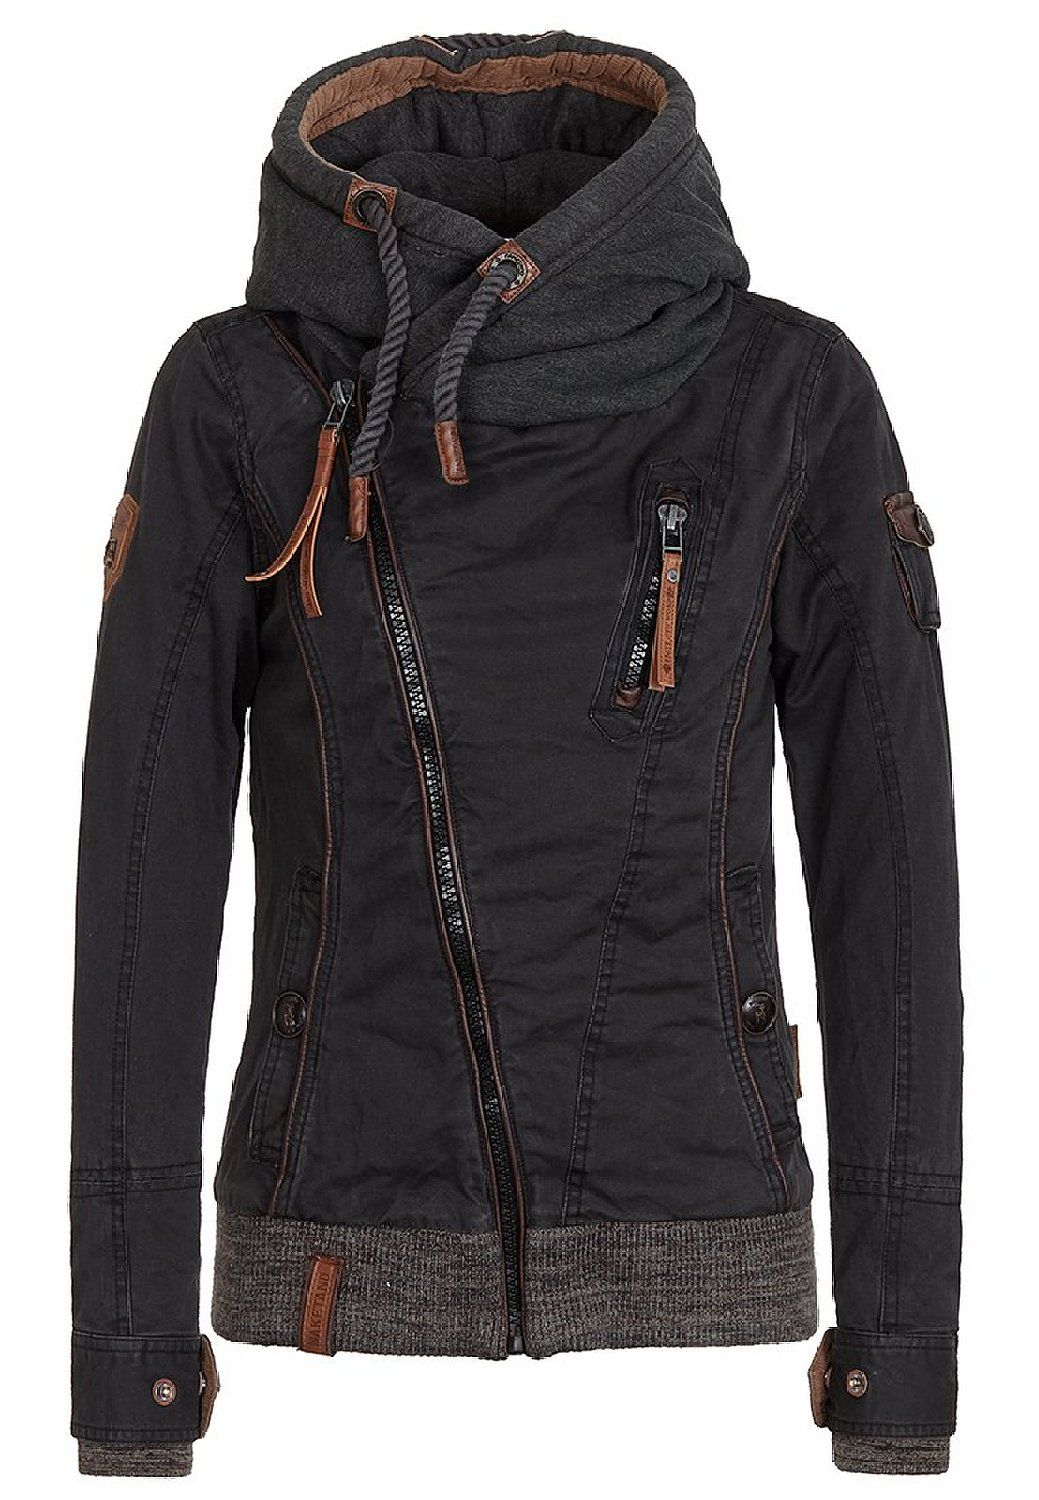 422b15ed08bc Naketano Walk The Line II Female Jacket Black, XS   My Style ...